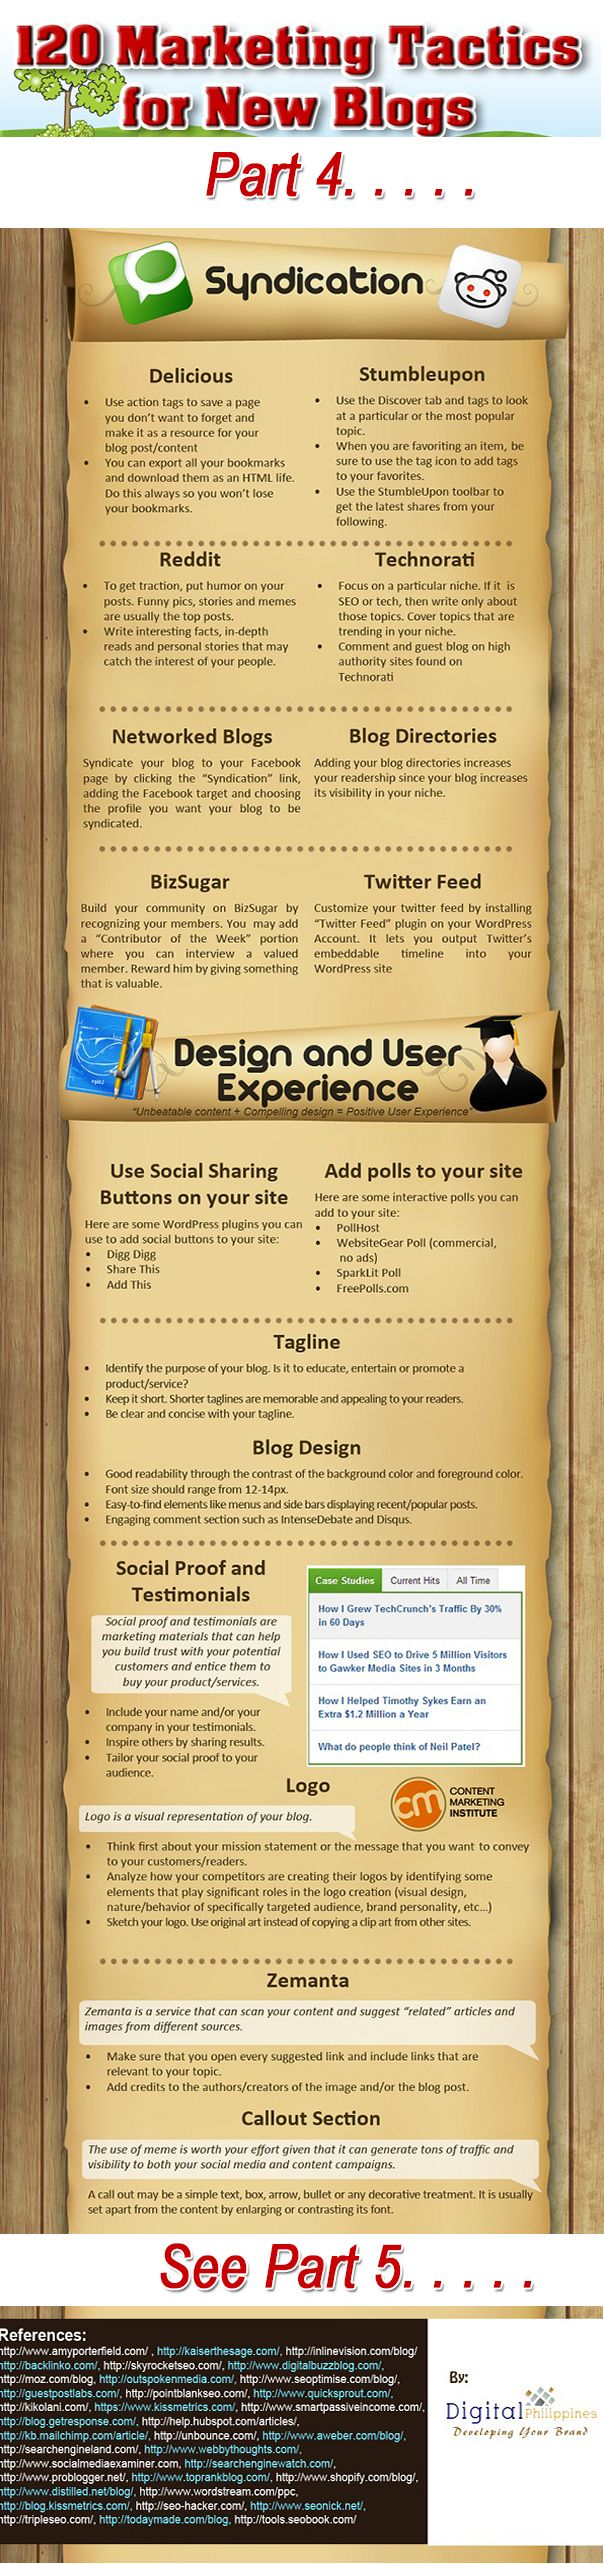 120 marketing tips for bloggers how to promote your blog #infographic www.socialmediabusinessacademy.com part 4